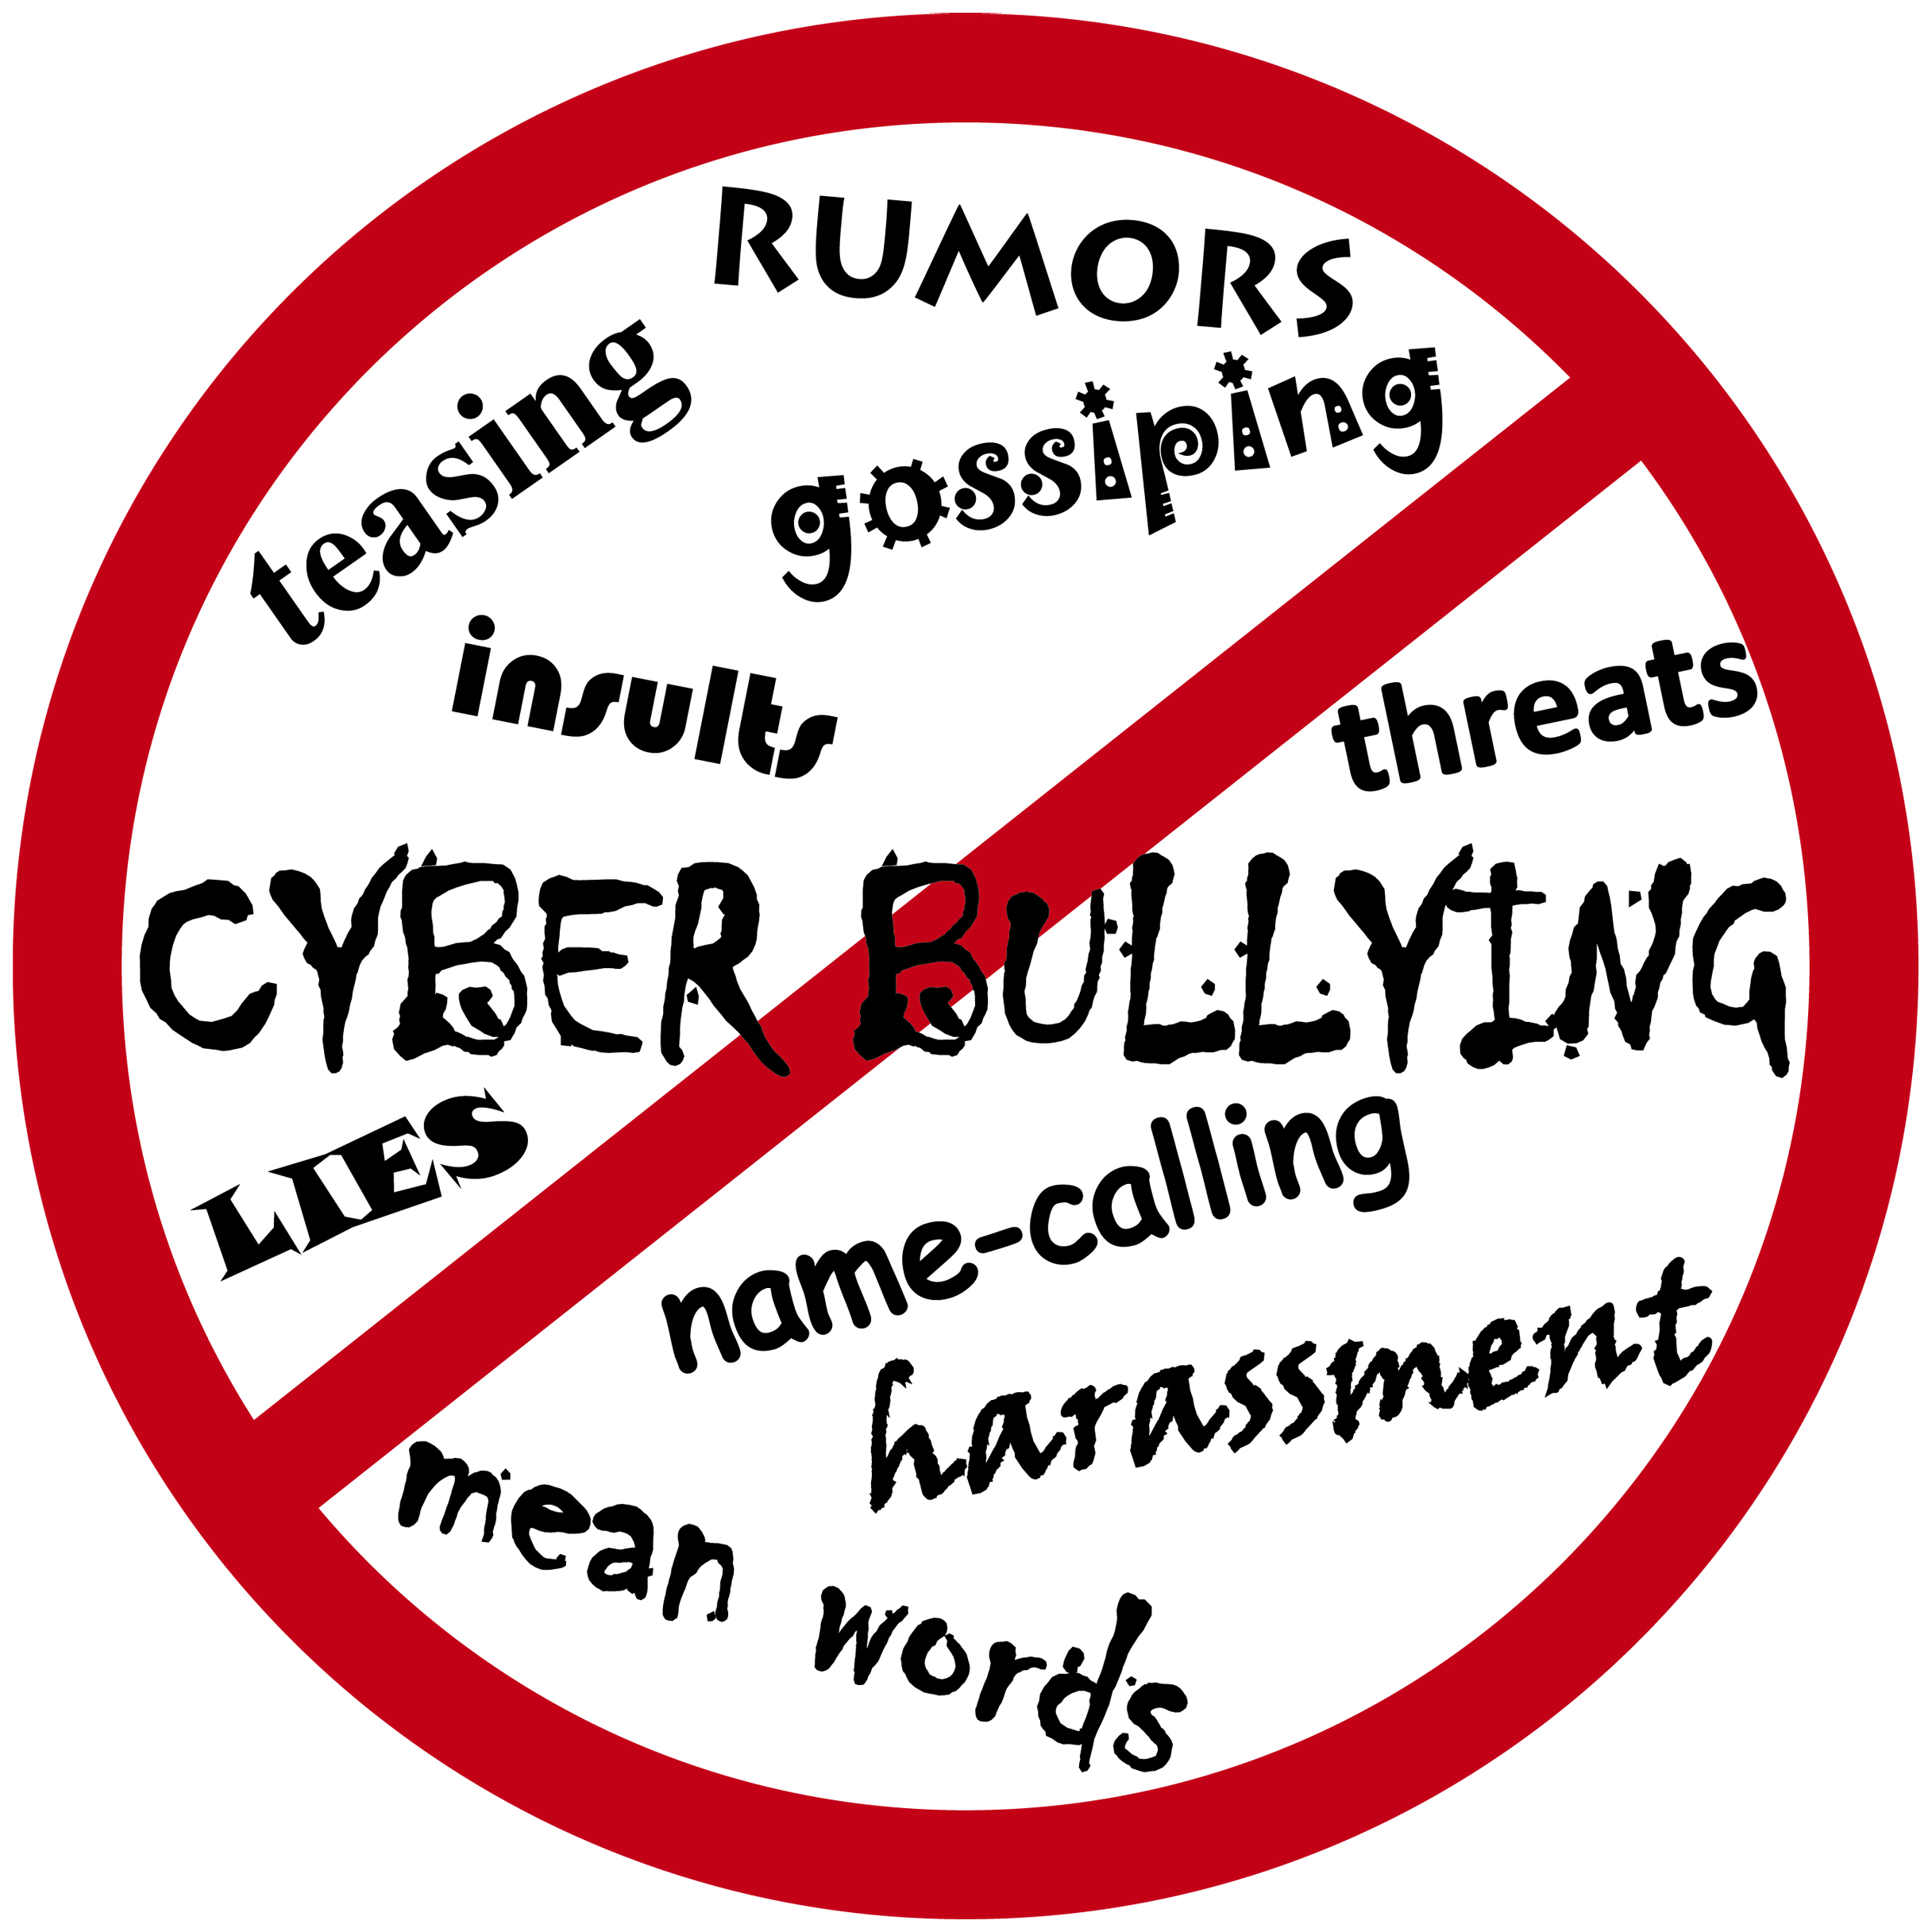 ... Cyberbullying vector icon